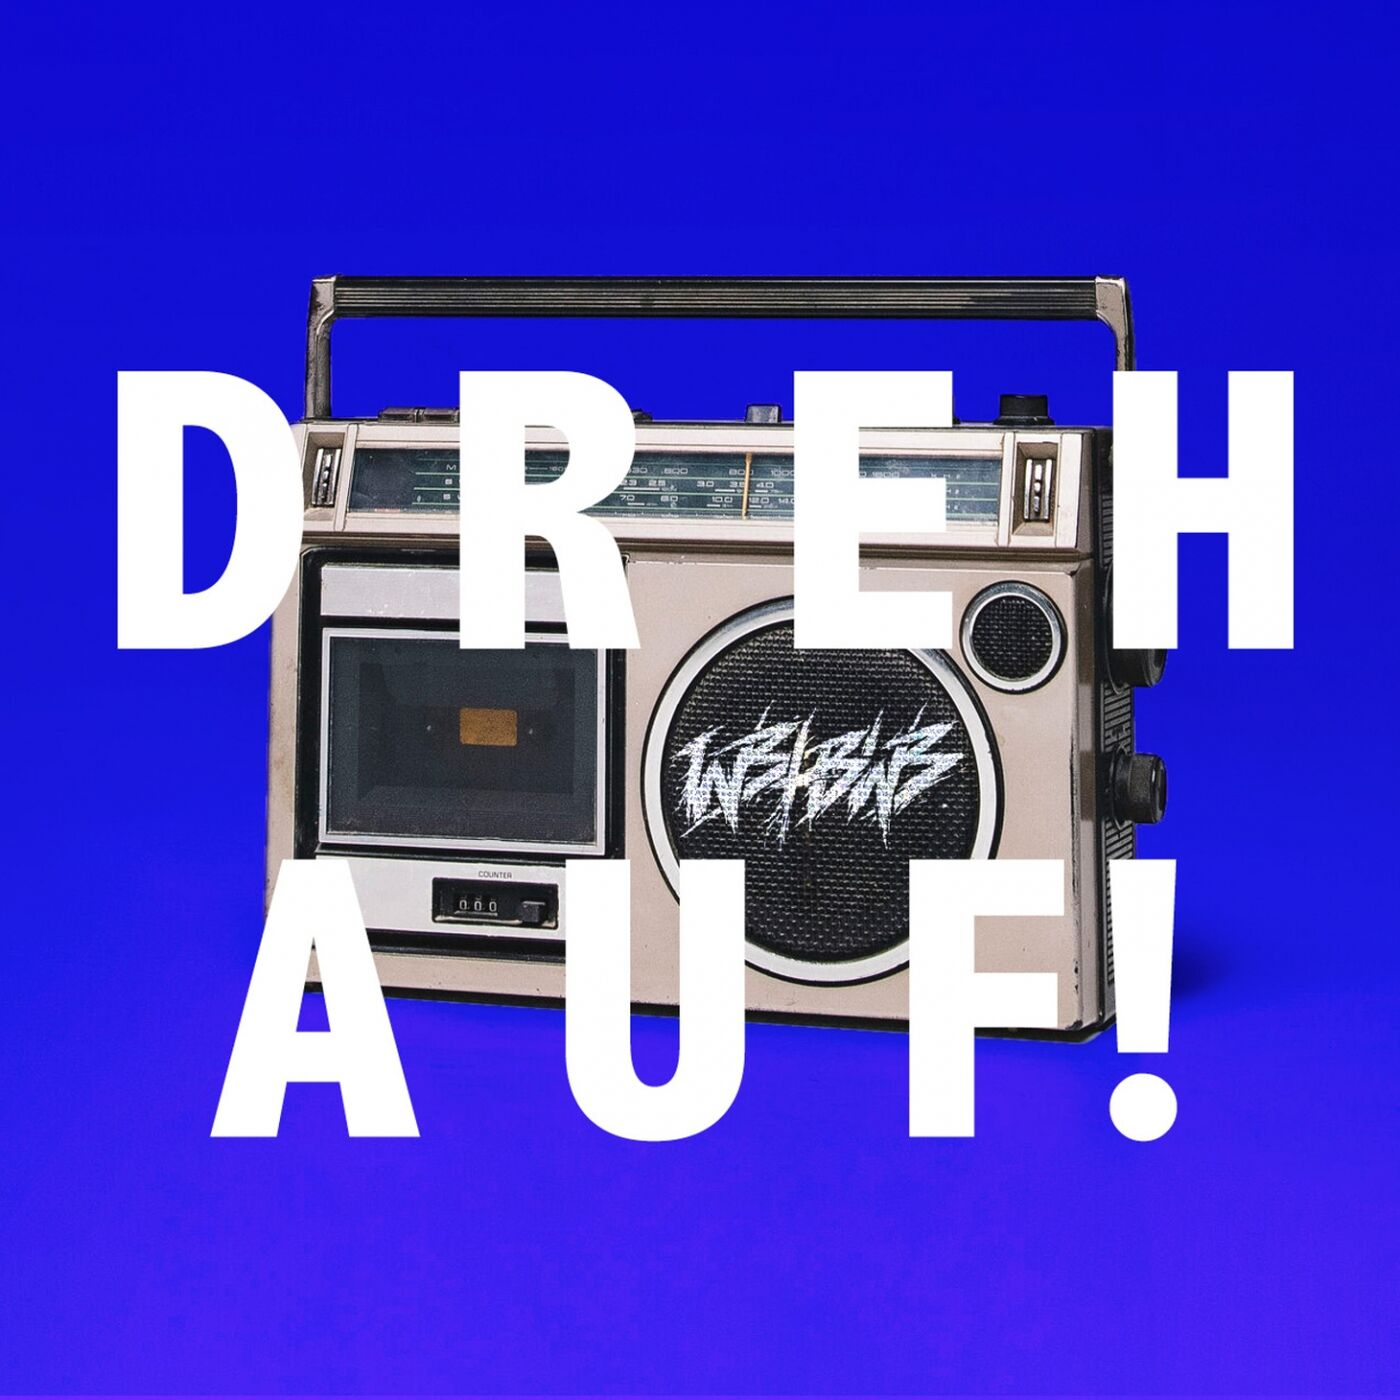 We Butter The Bread With Butter - Dreh auf! [single] (2019)